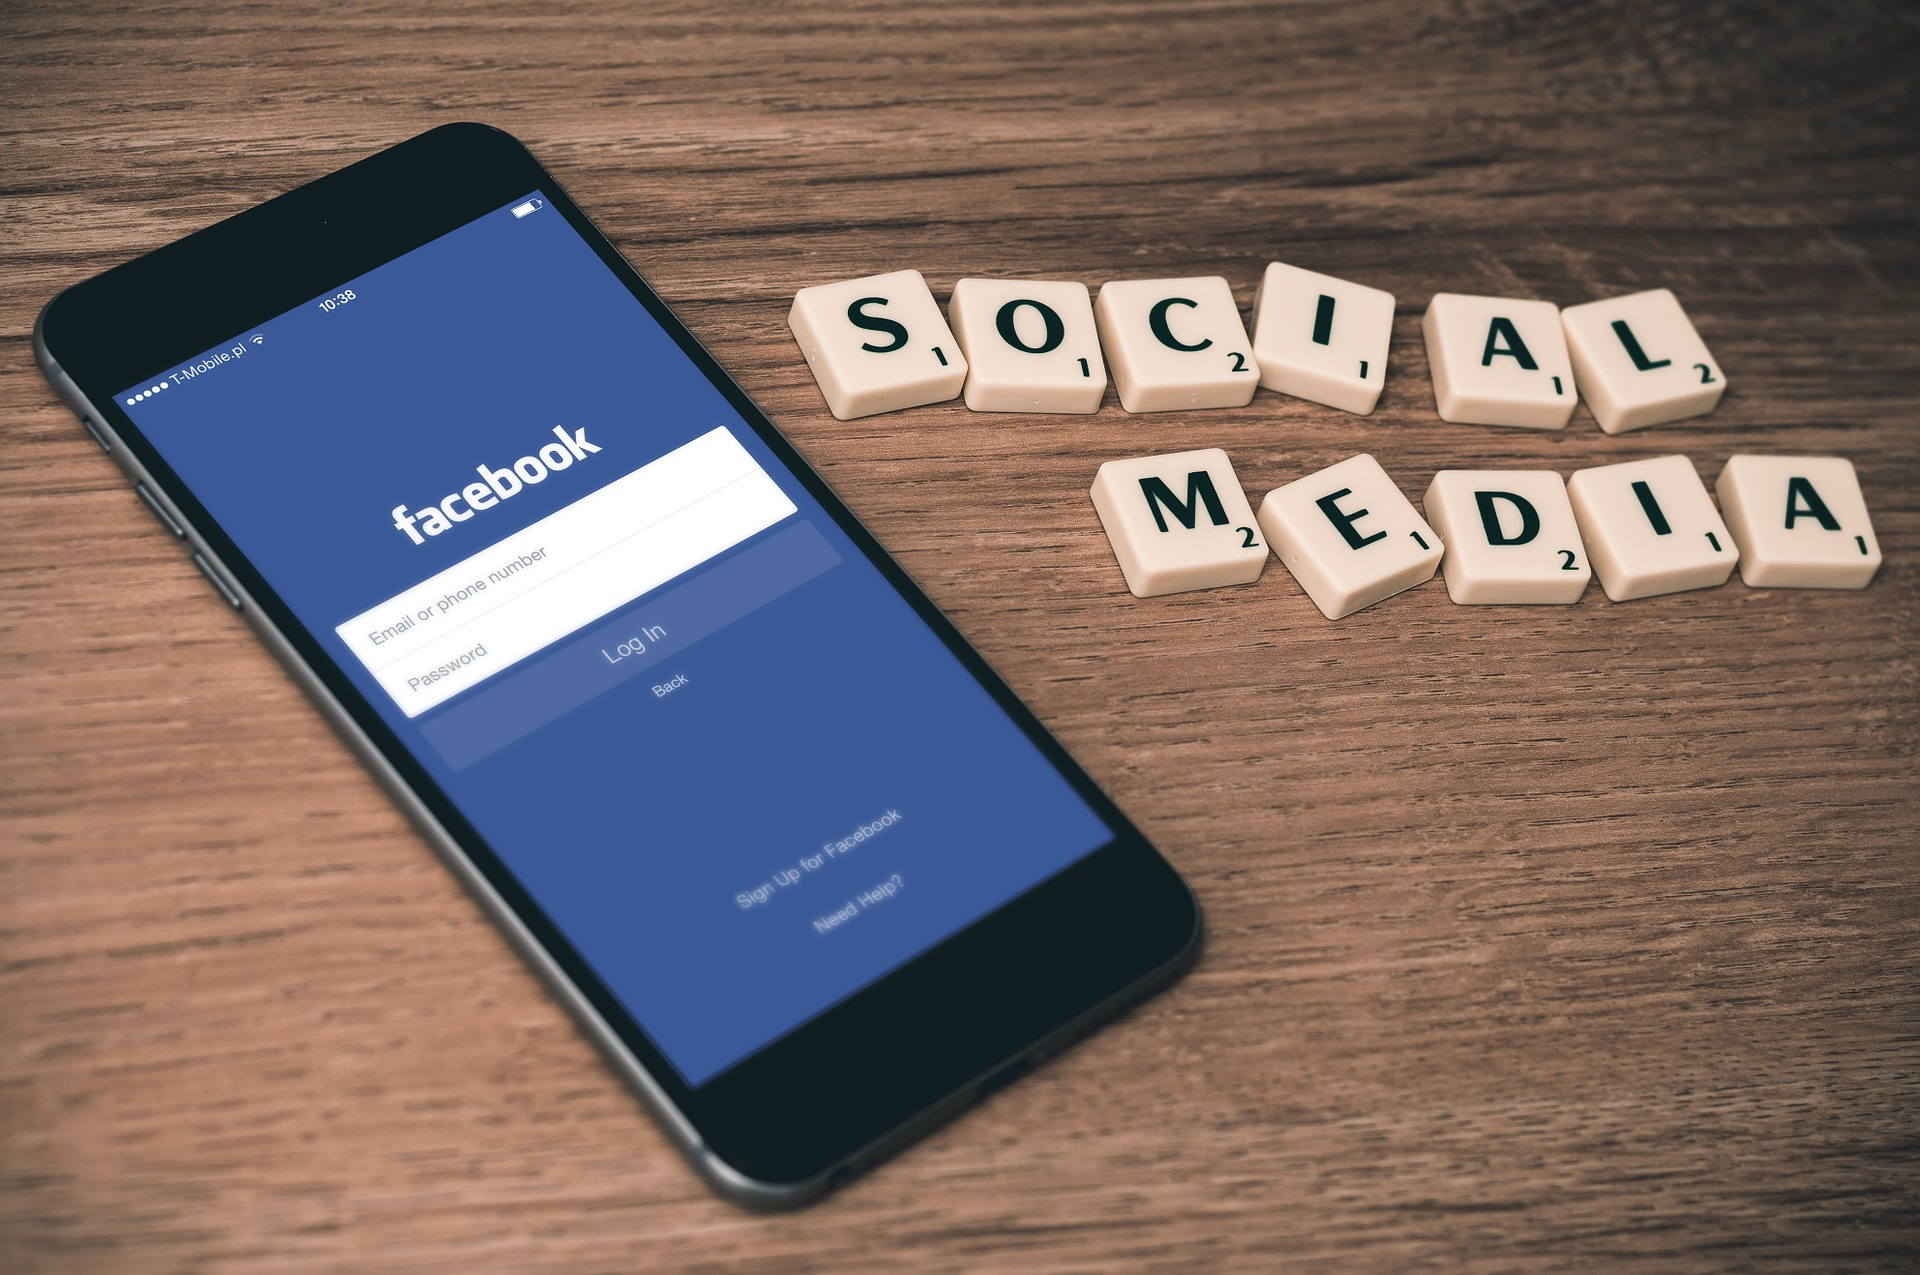 How to turn off Facebook two step verification without logging in? 2021